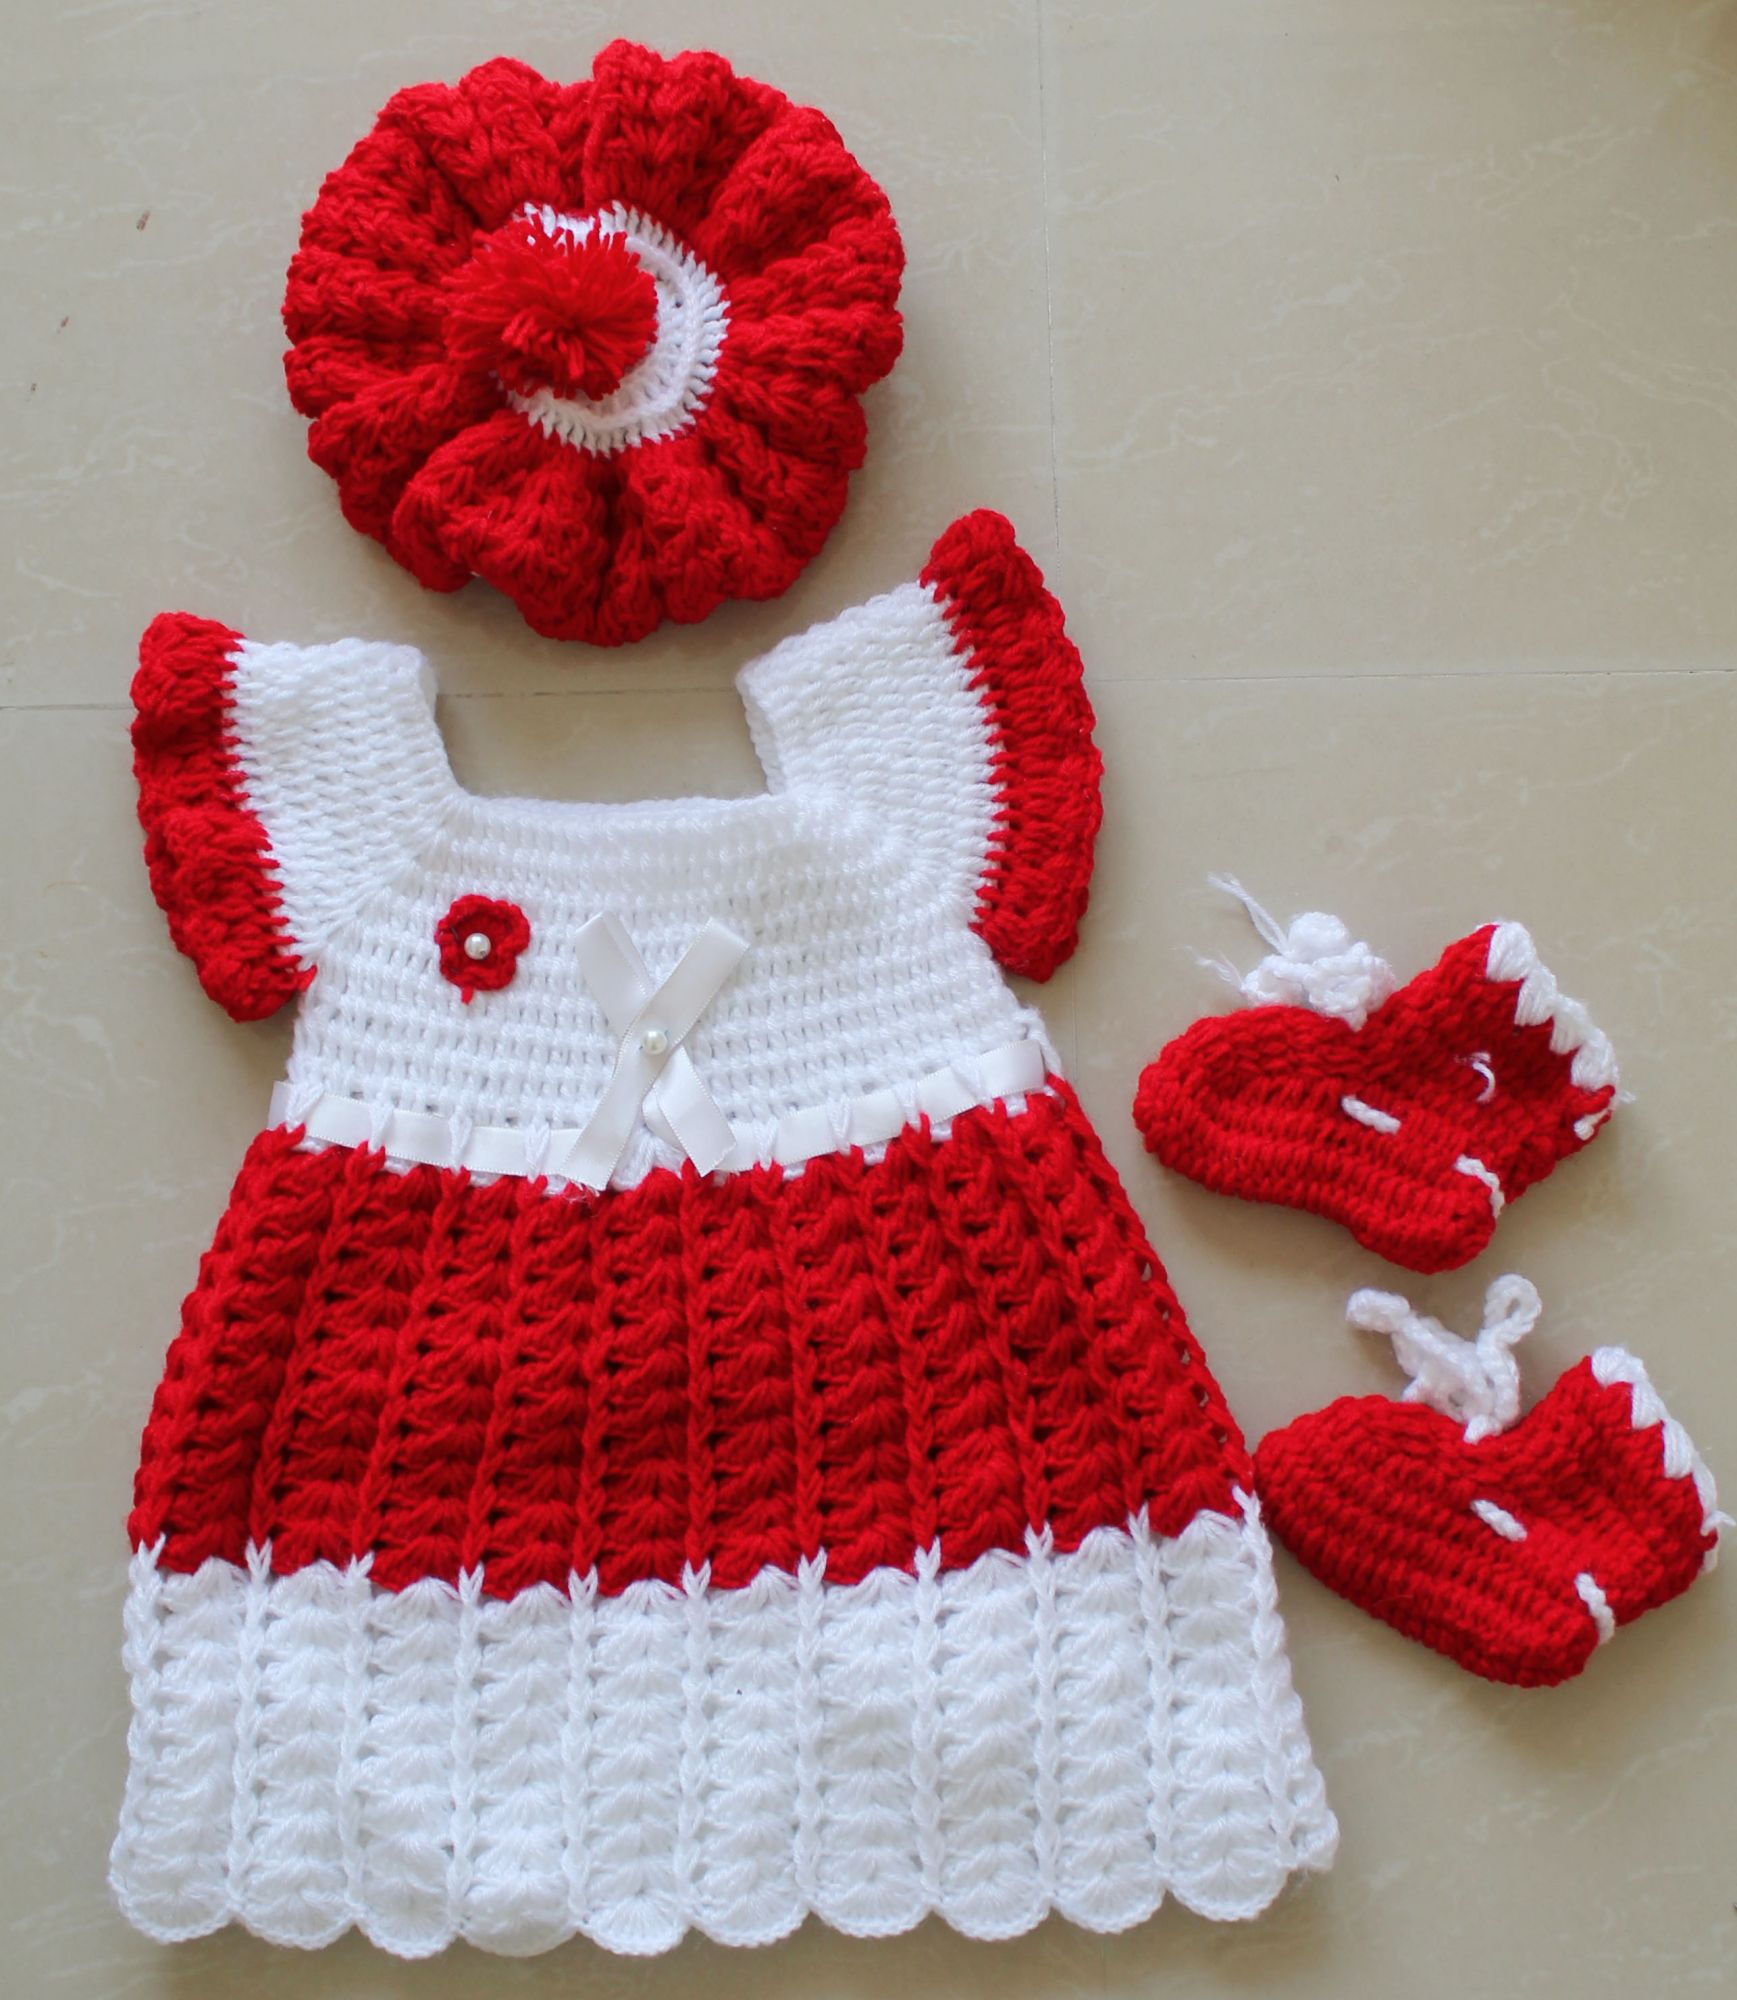 Red and White Frock with Cap and Booties